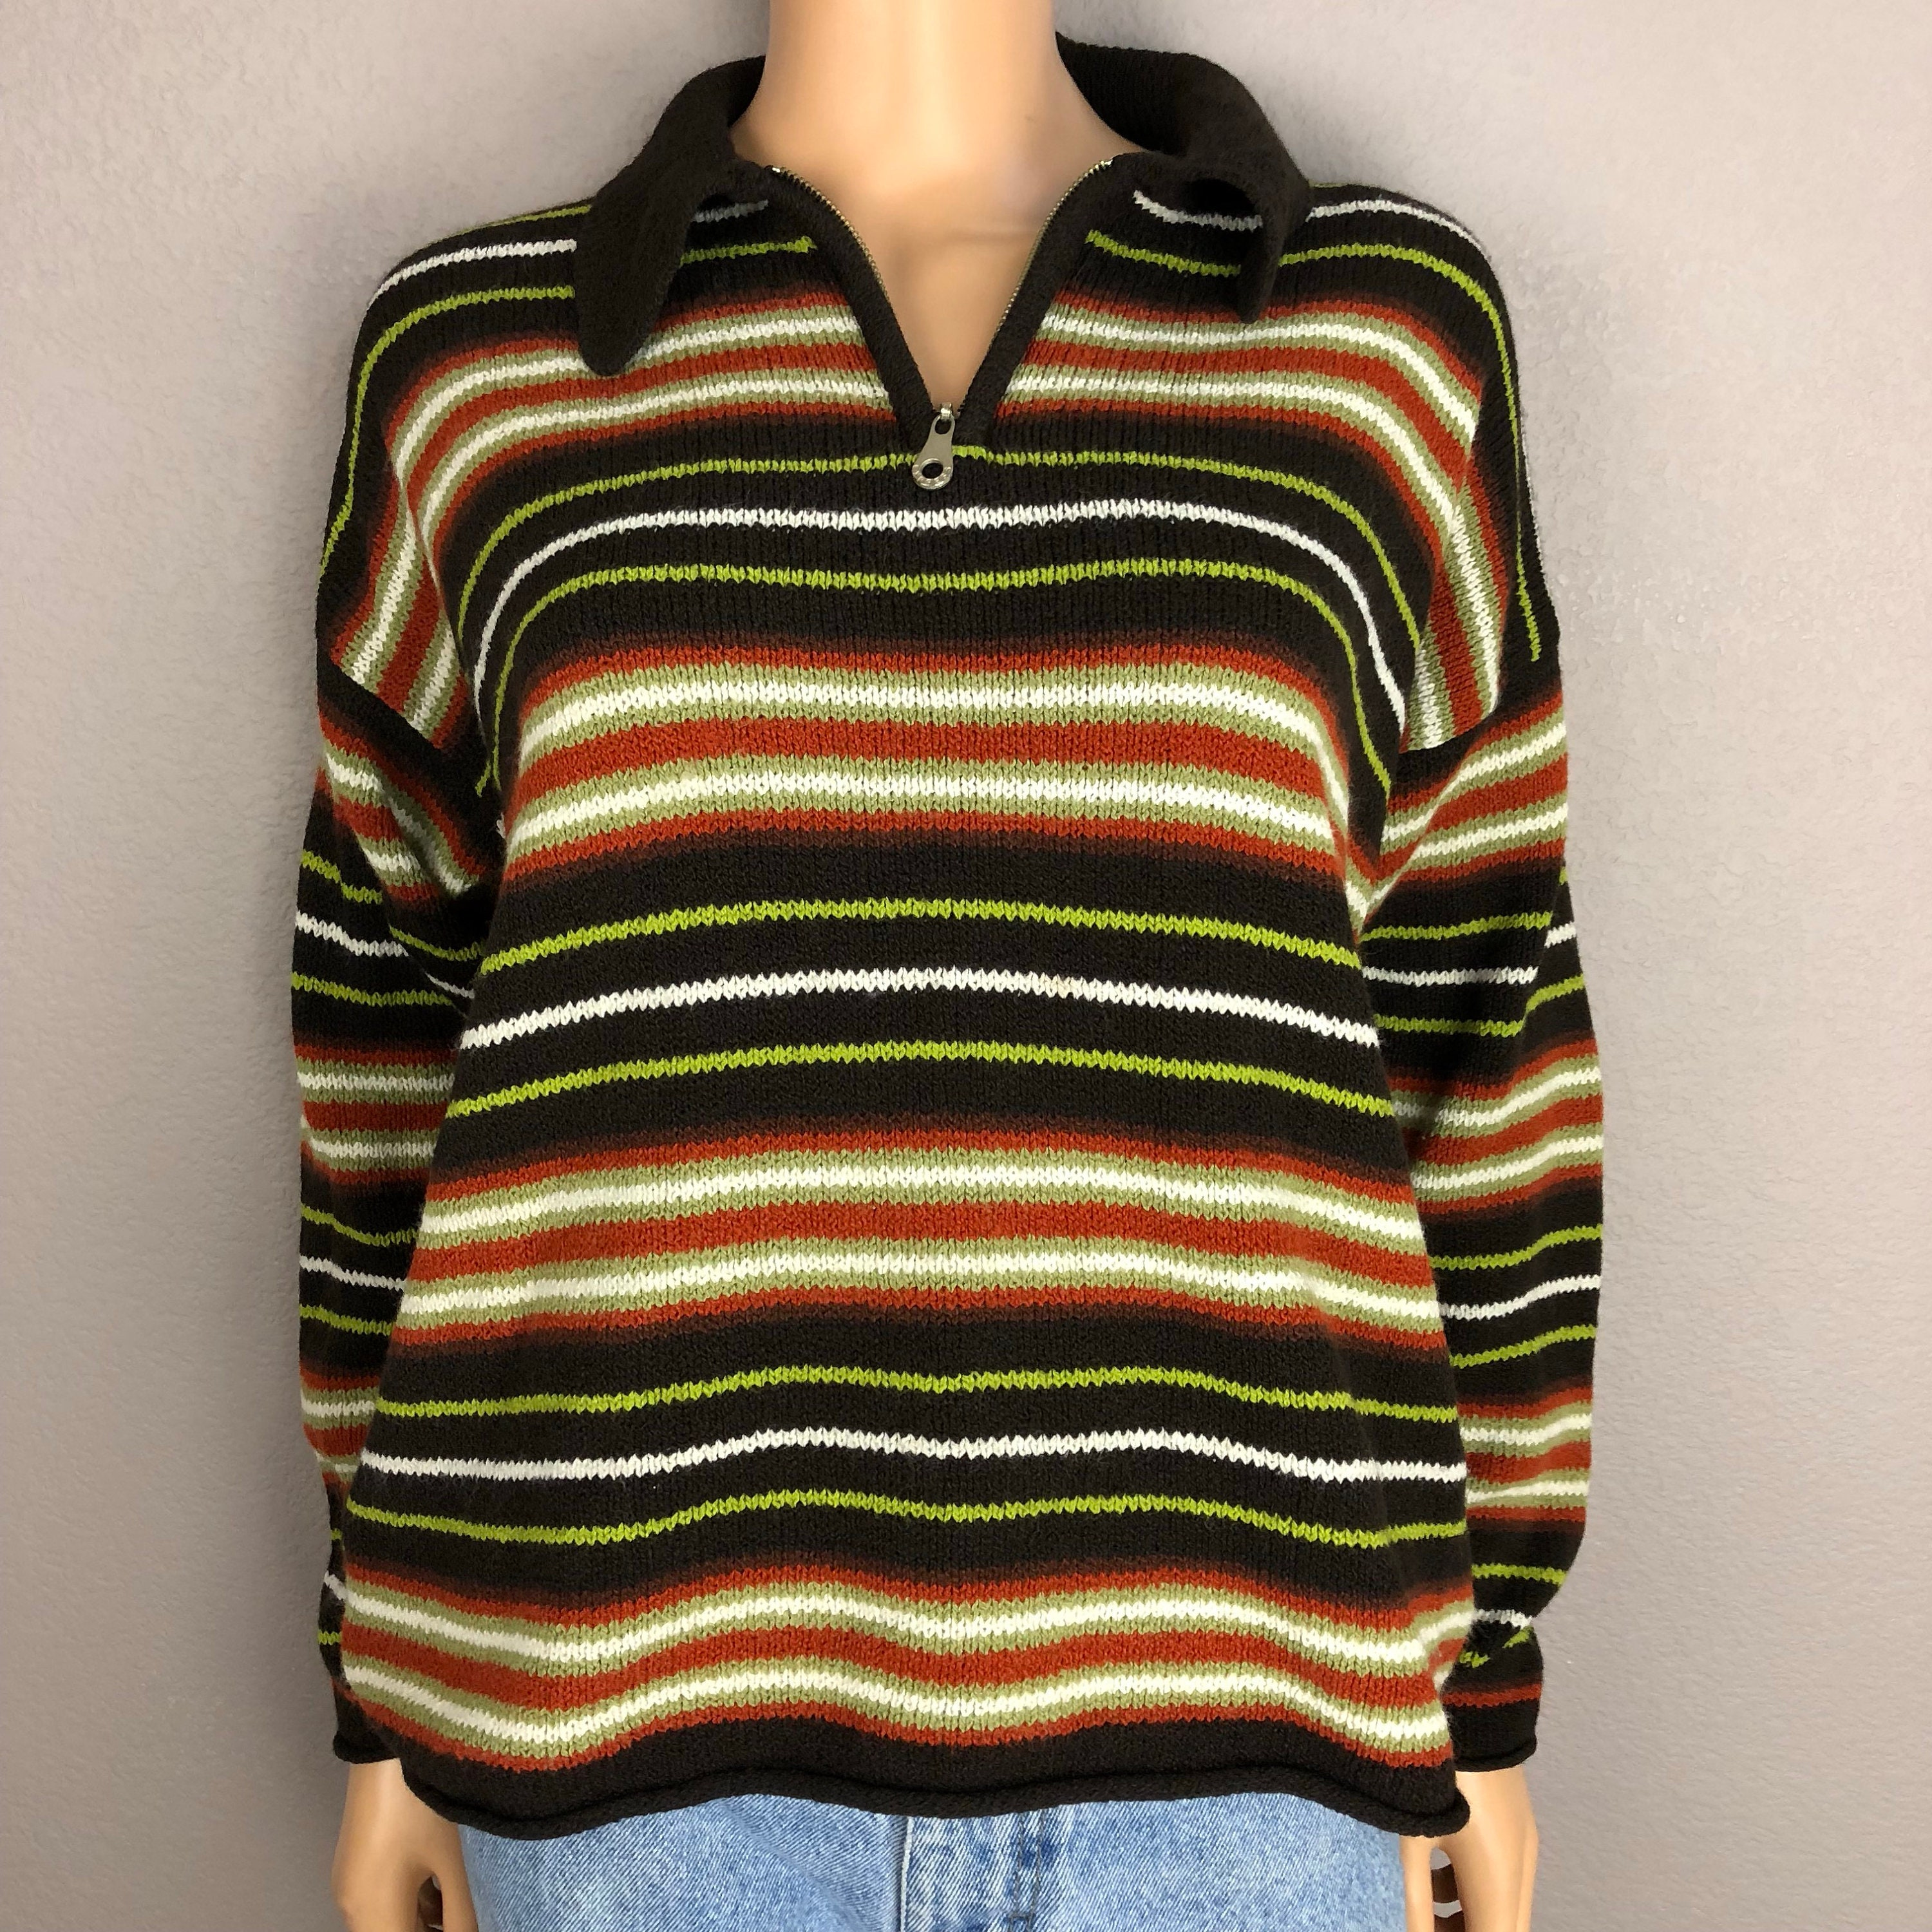 0063ba94ae1 90s Women s Striped Pullover Sweater Express Tricot Size Small ...